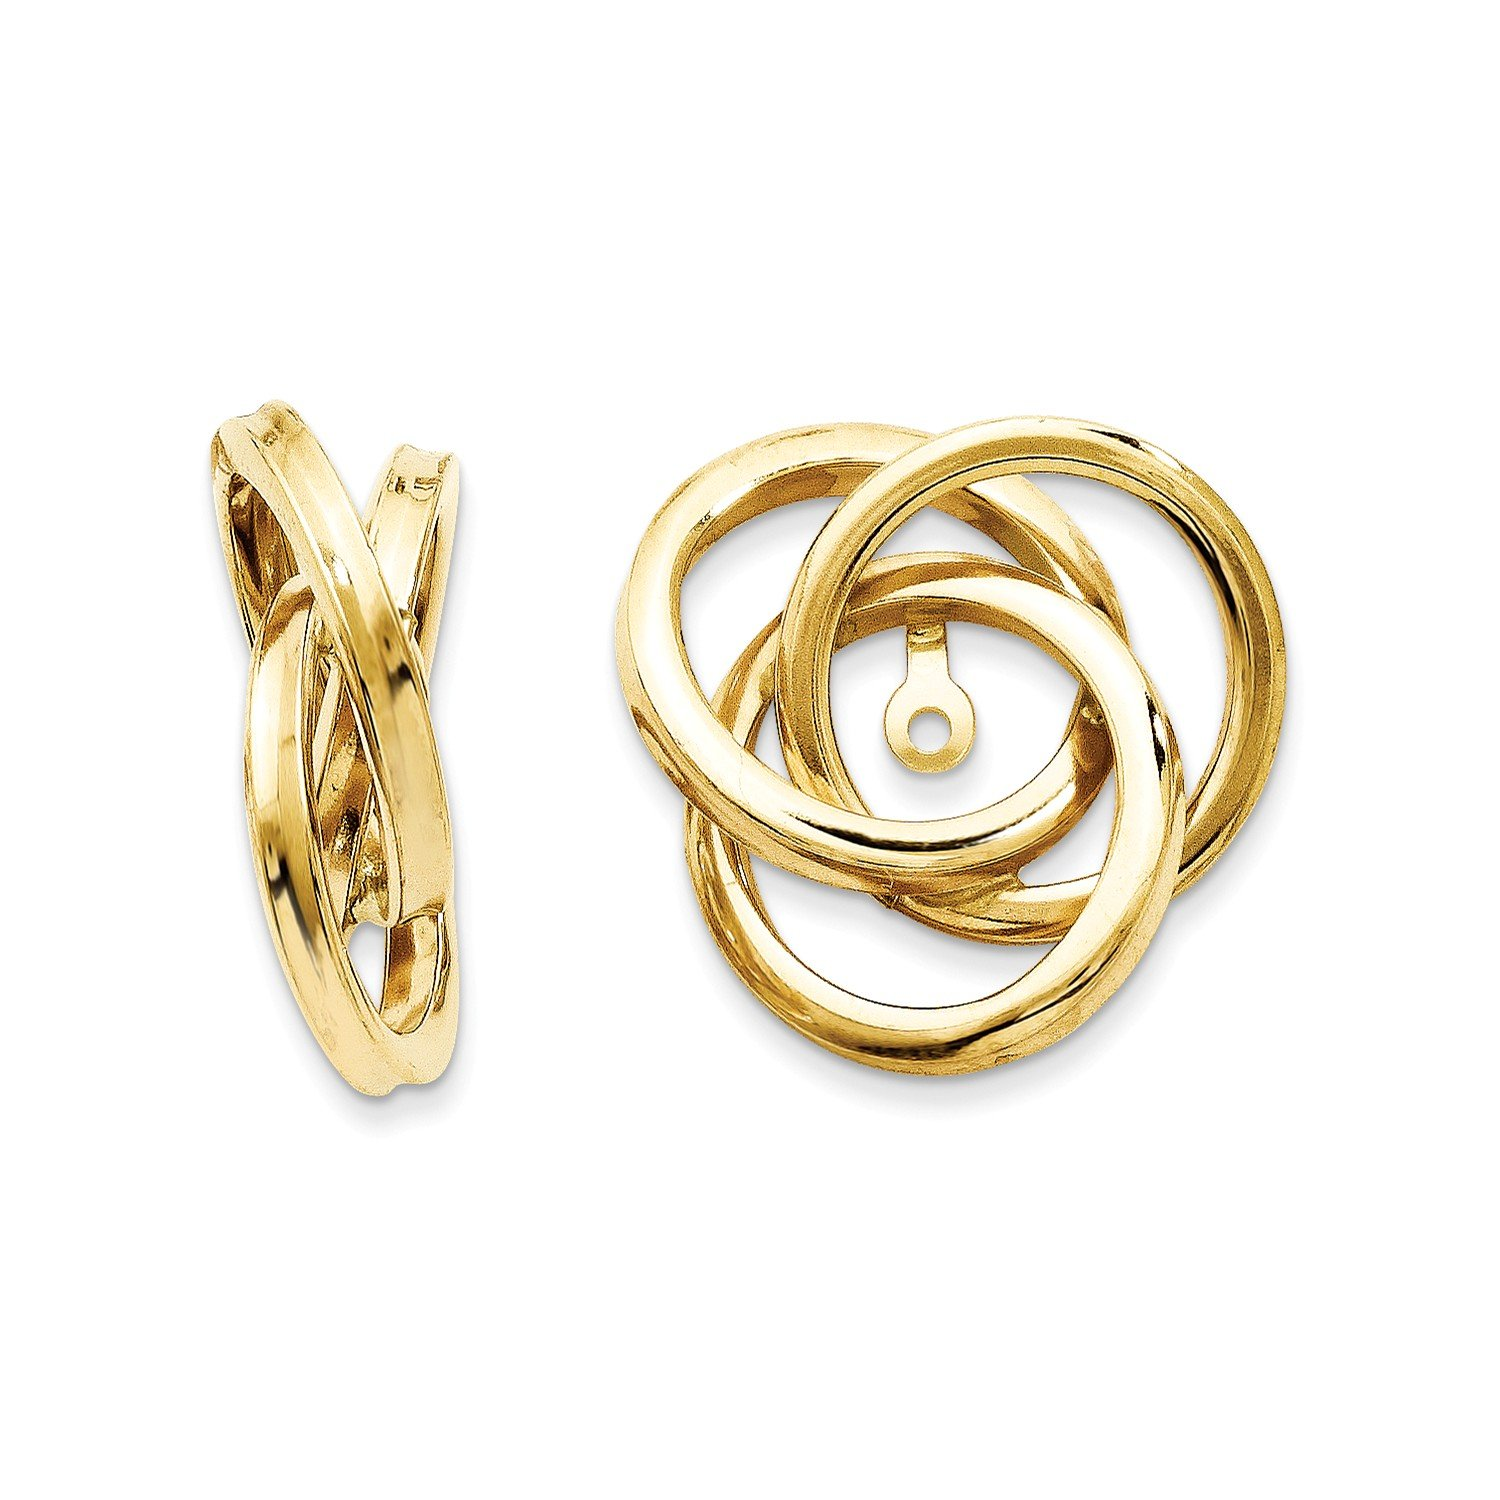 Roy Rose Jewelry 14K Yellow Gold Polished Love Knot Earring Jackets 18mm length